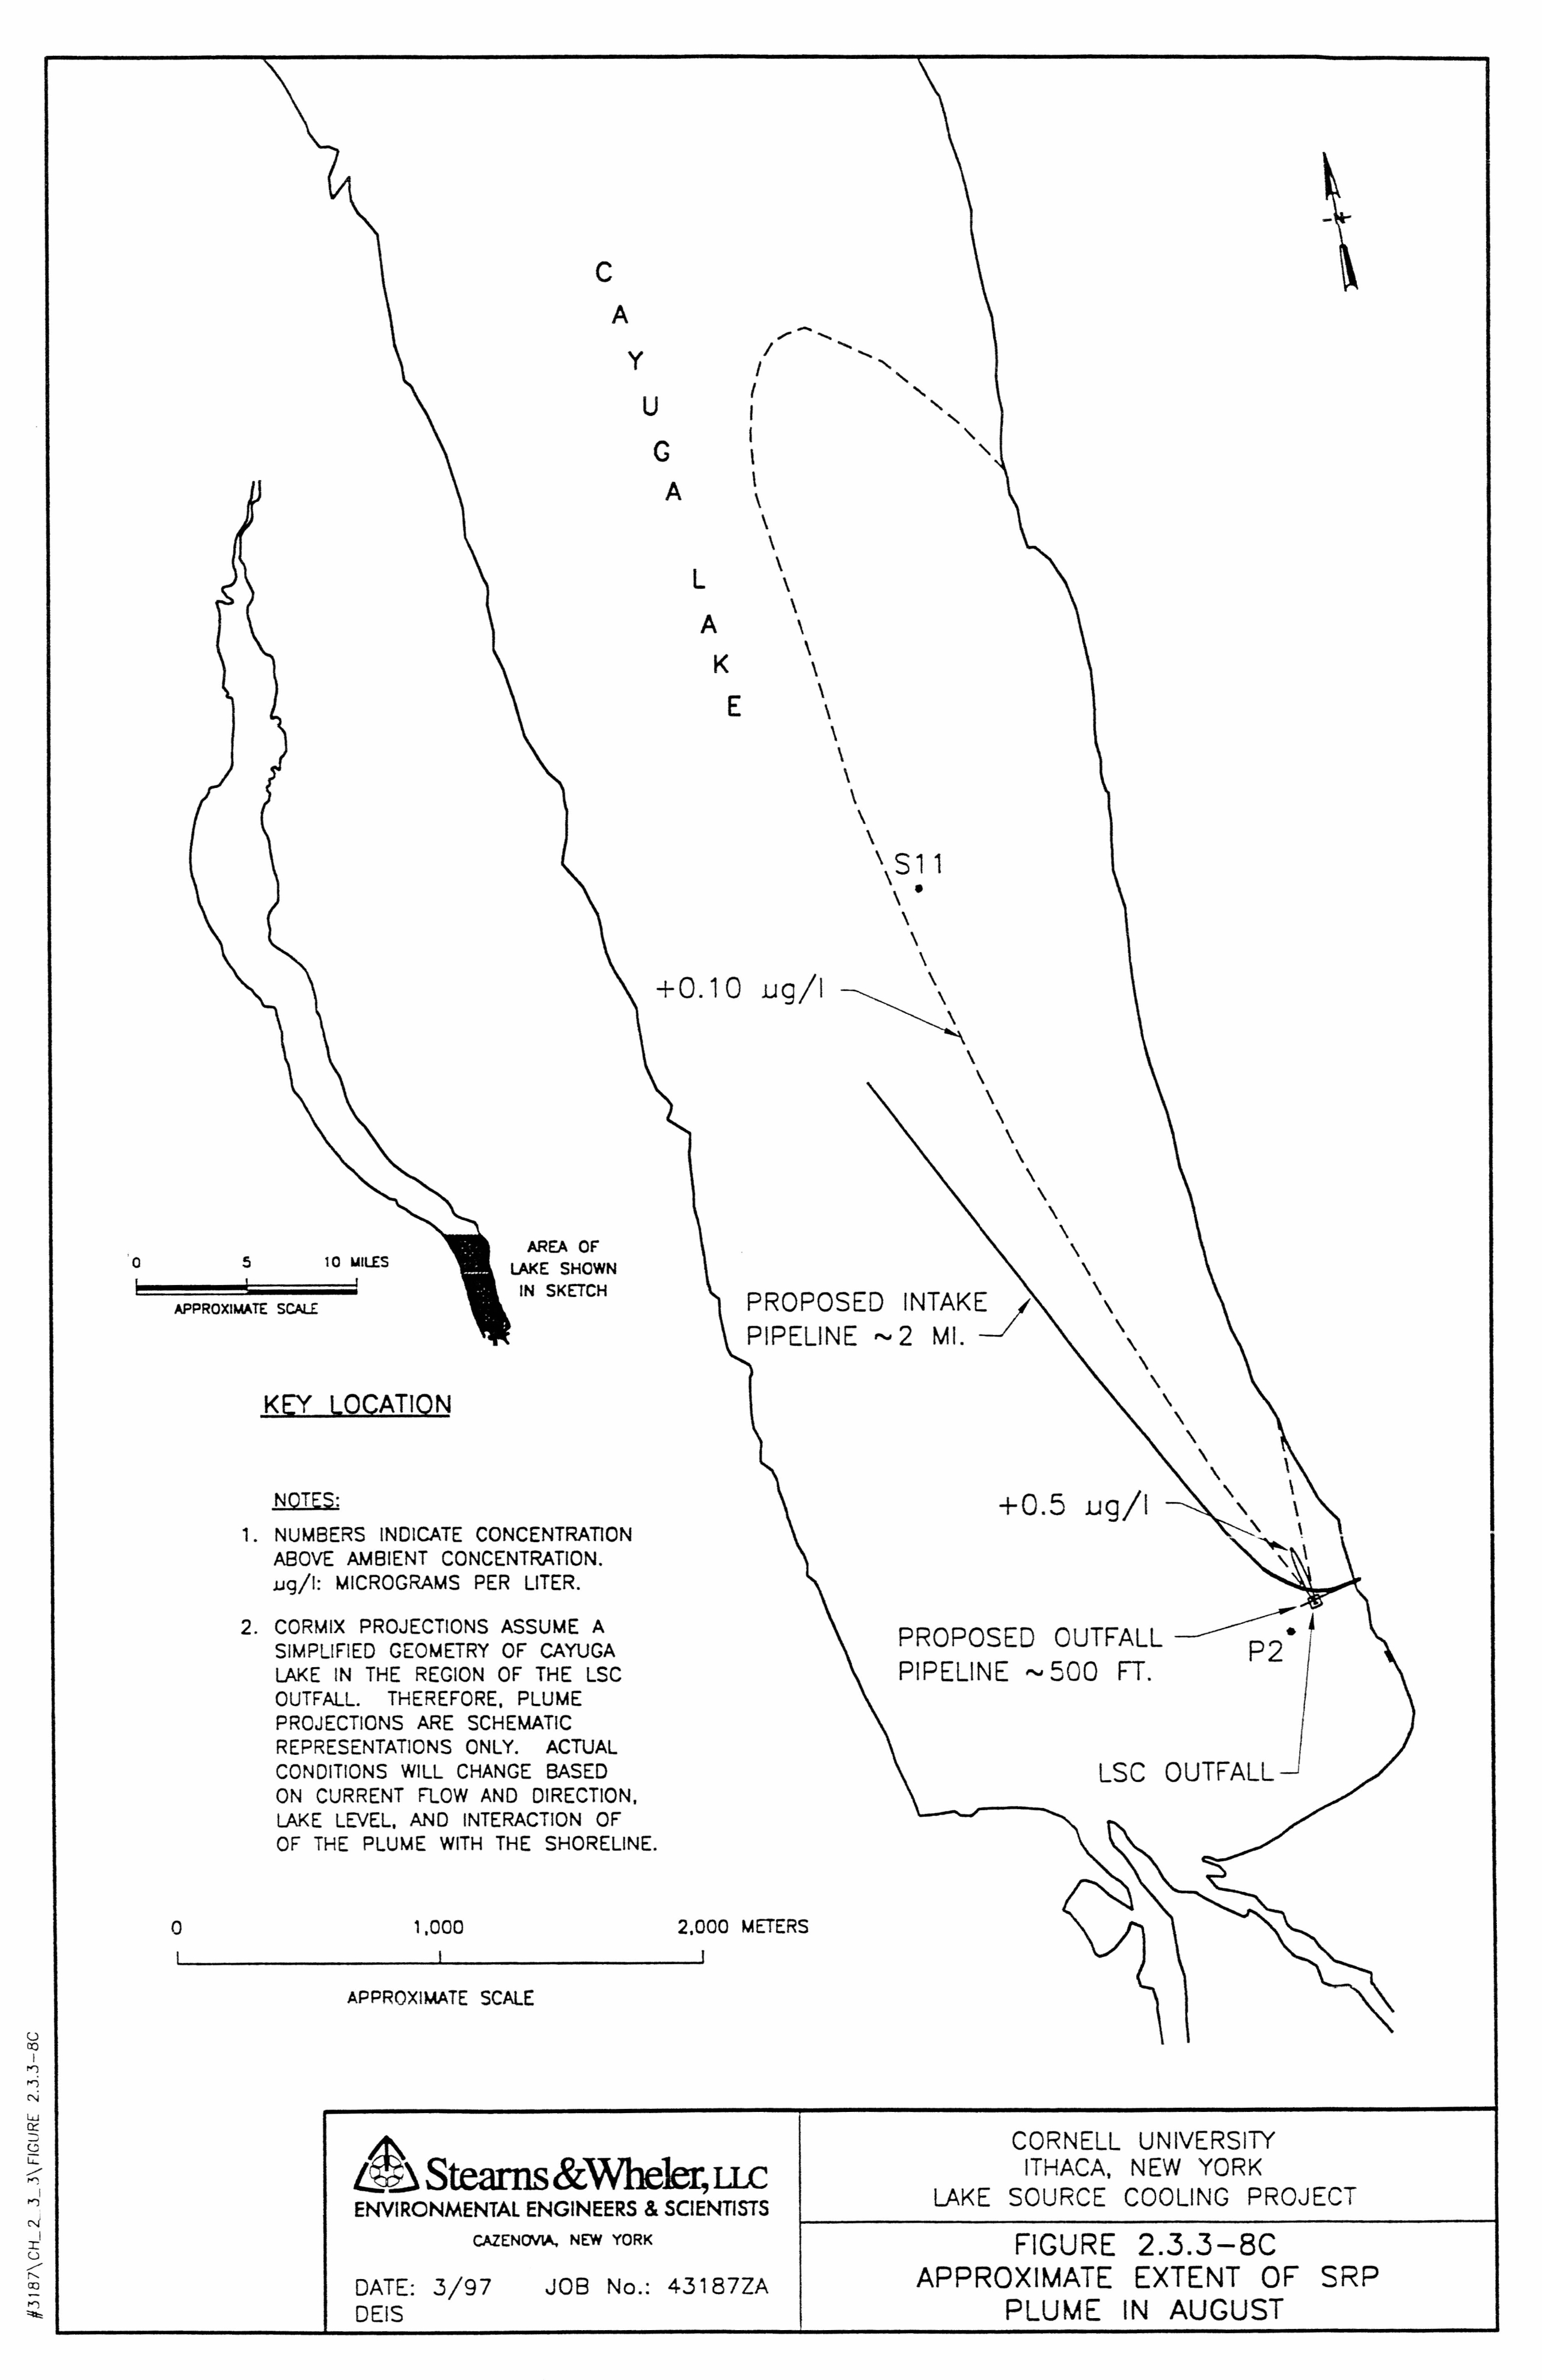 Lake Source Cooling Project Deis Approximate Extent Of Soluble Download The Schematic In Pdf Format Click Here To And Zoom Into Reactive Phosphorus Plume August September